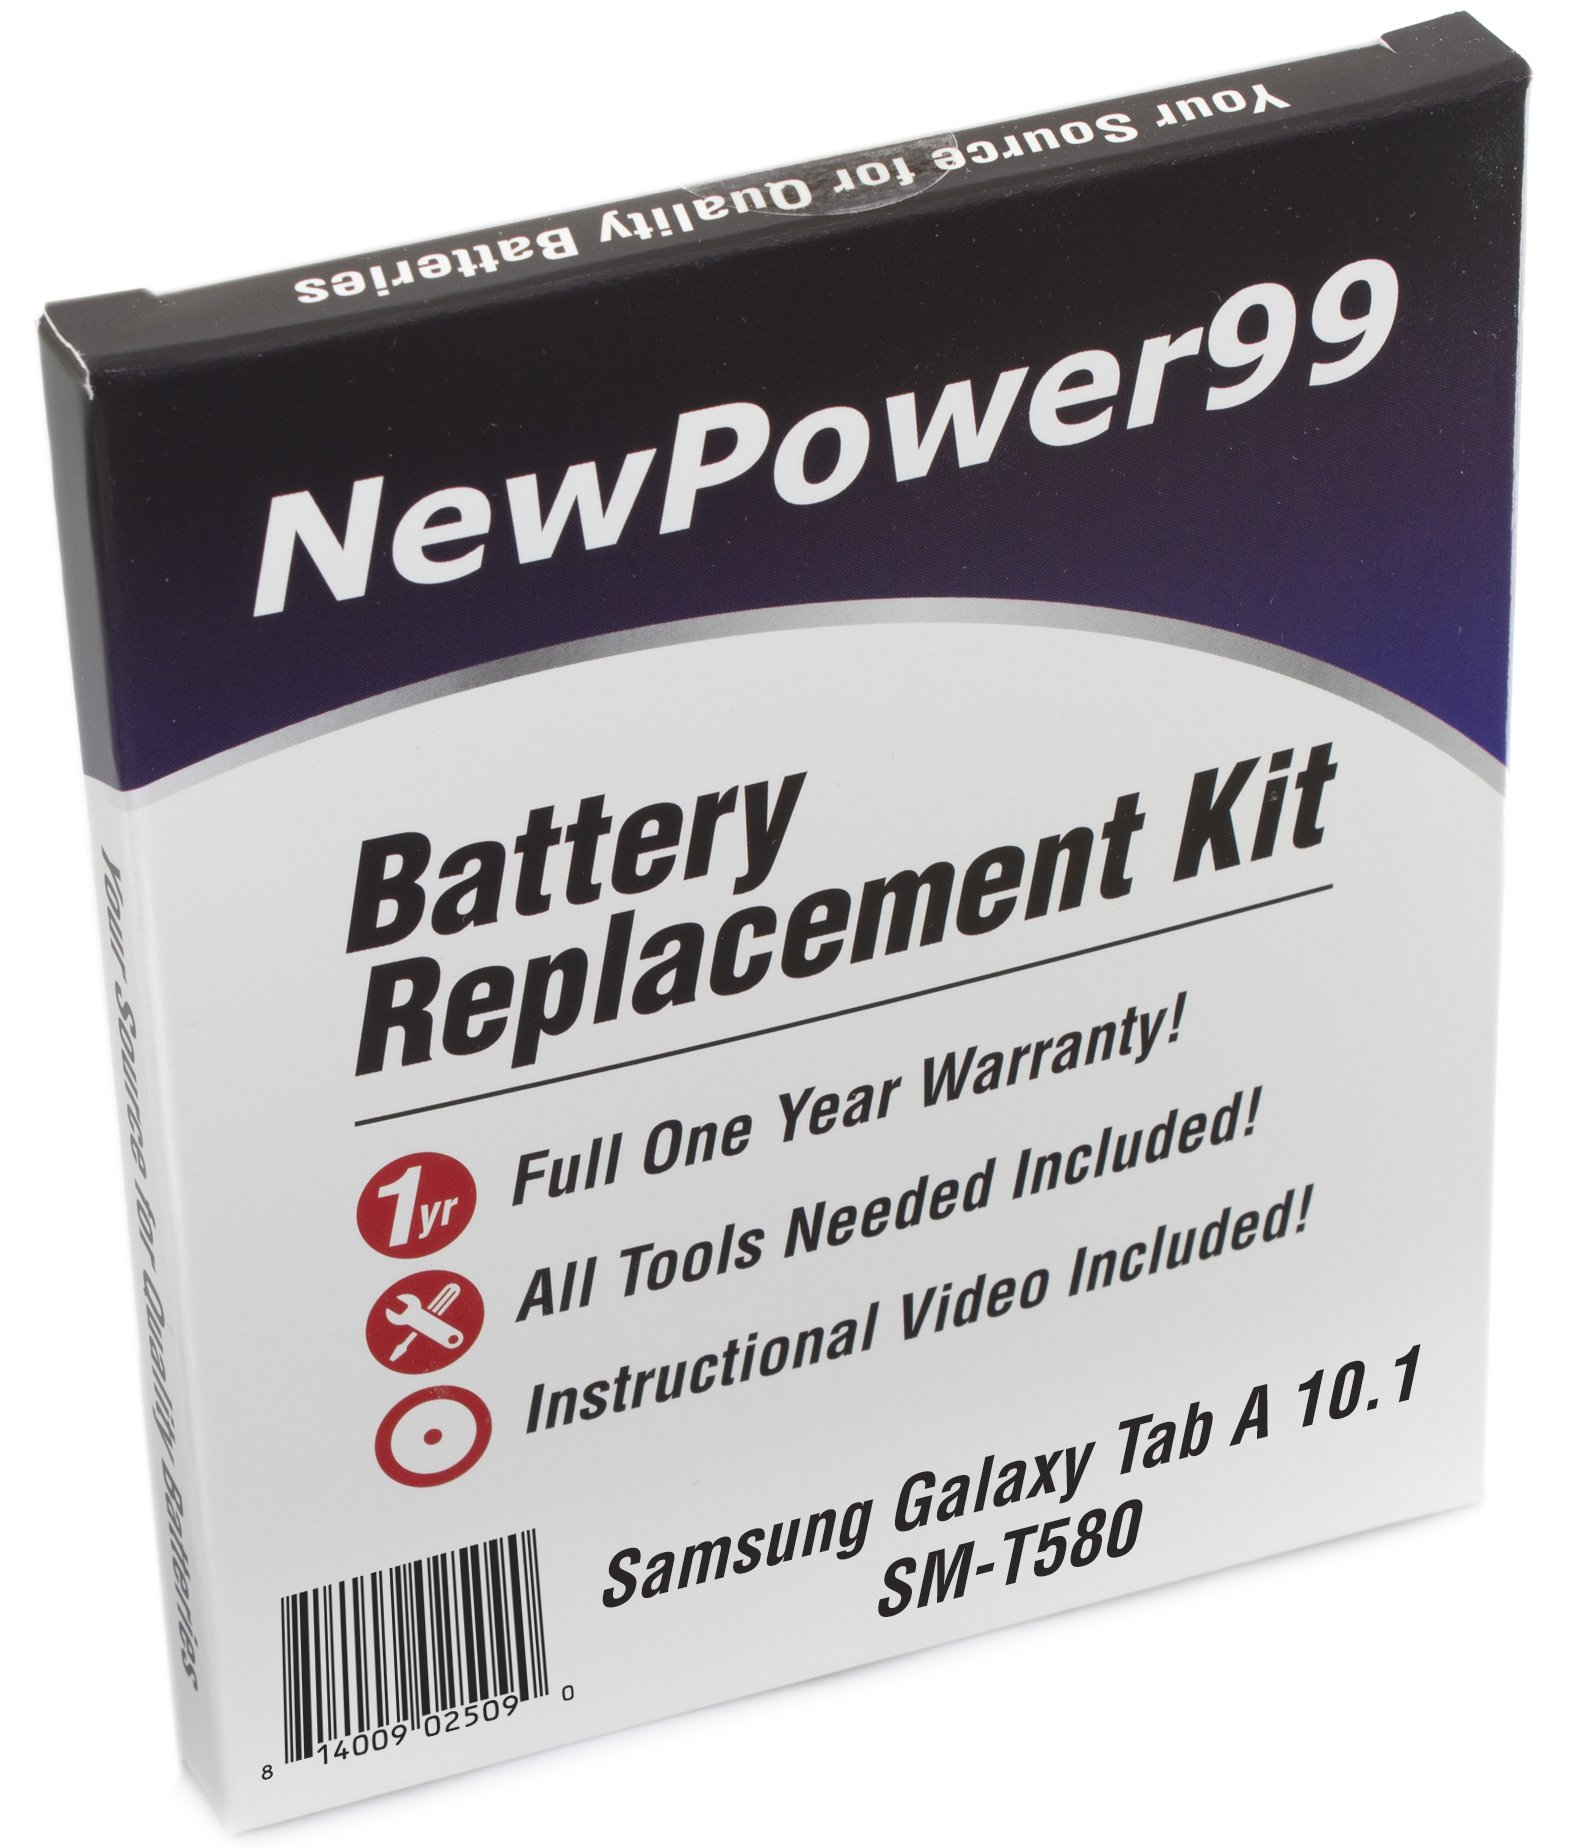 Samsung GALAXY Tab A 10.1 SM-T580 Battery Replacement Kit with Video Installation DVD, Installation Tools, and Extended Life Battery